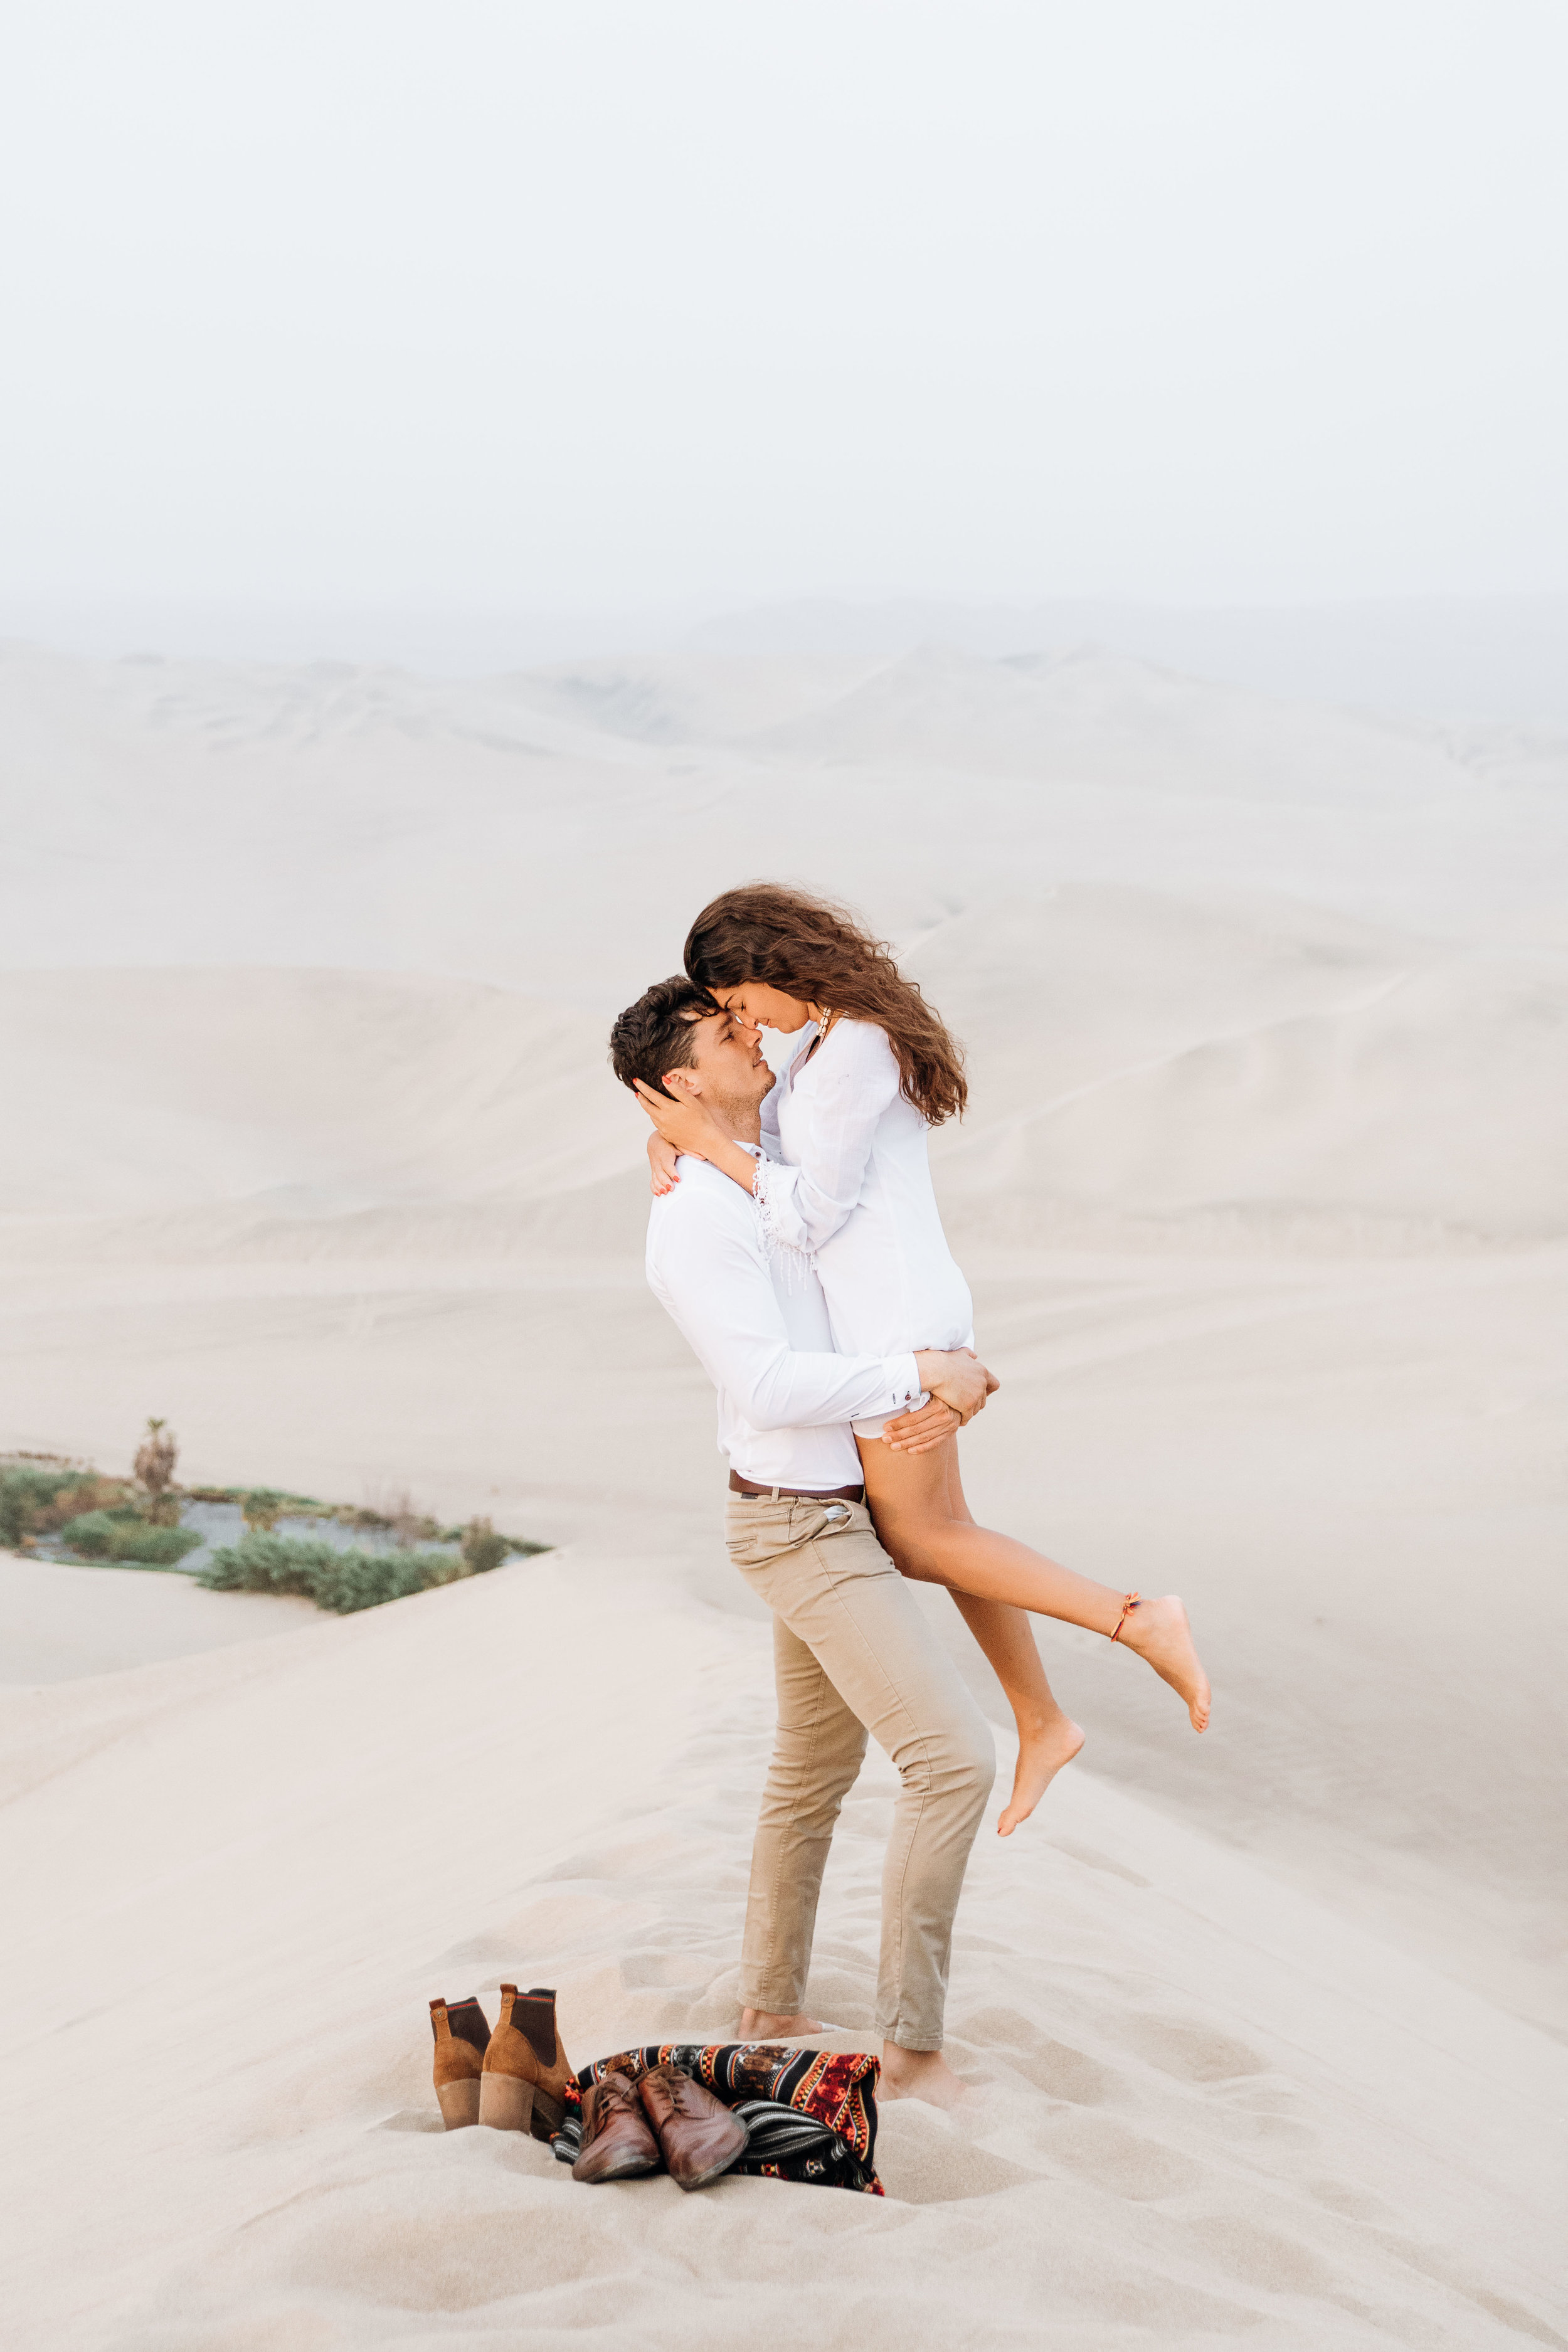 huacachina-peru-honeymoon-elopement-destination-wedding-photography-michael-cozzens-9.jpg